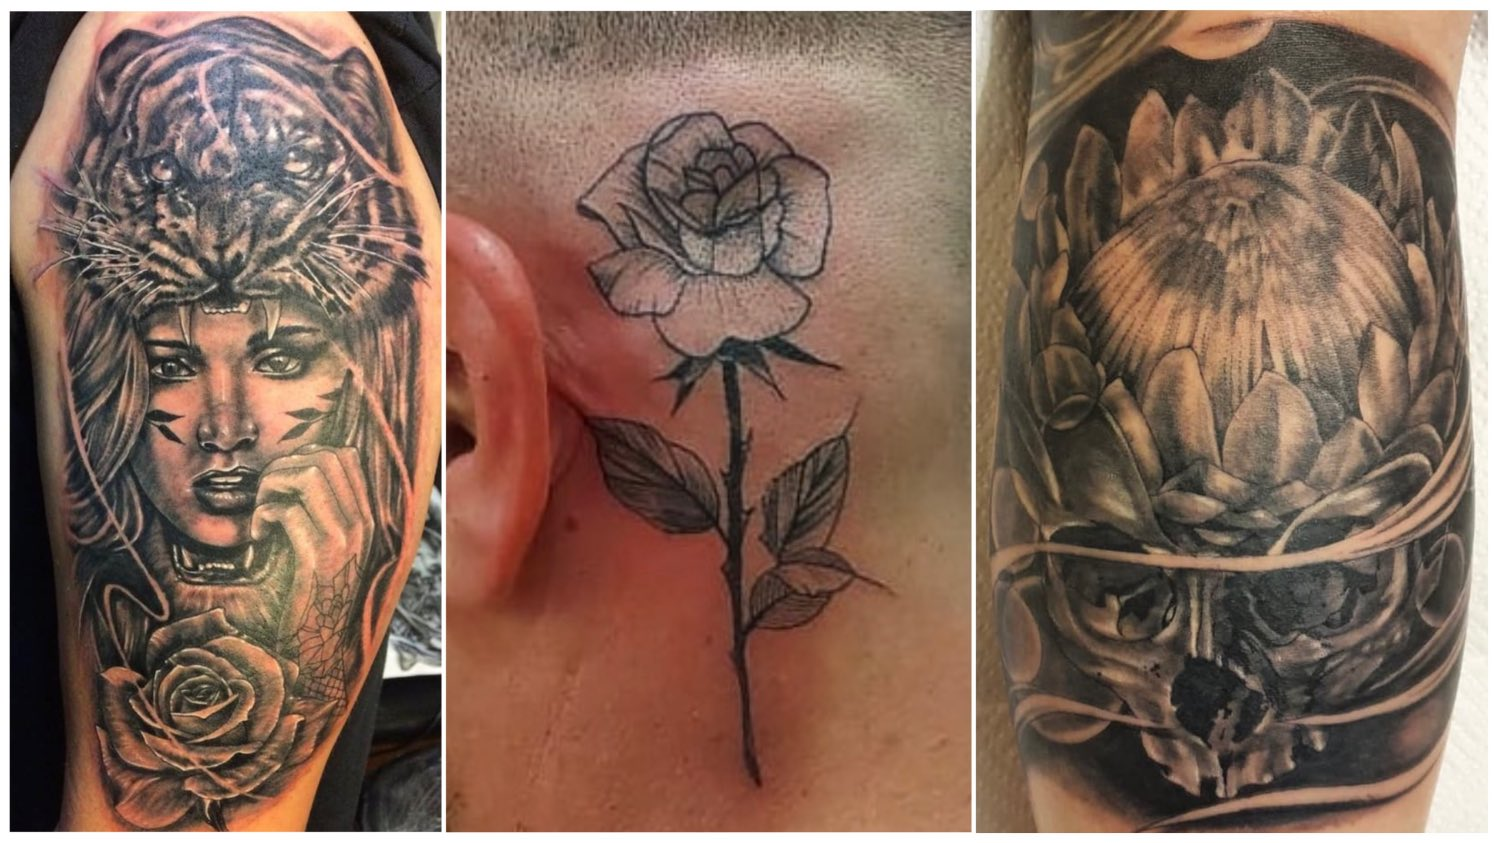 Tattoos done by James Rype